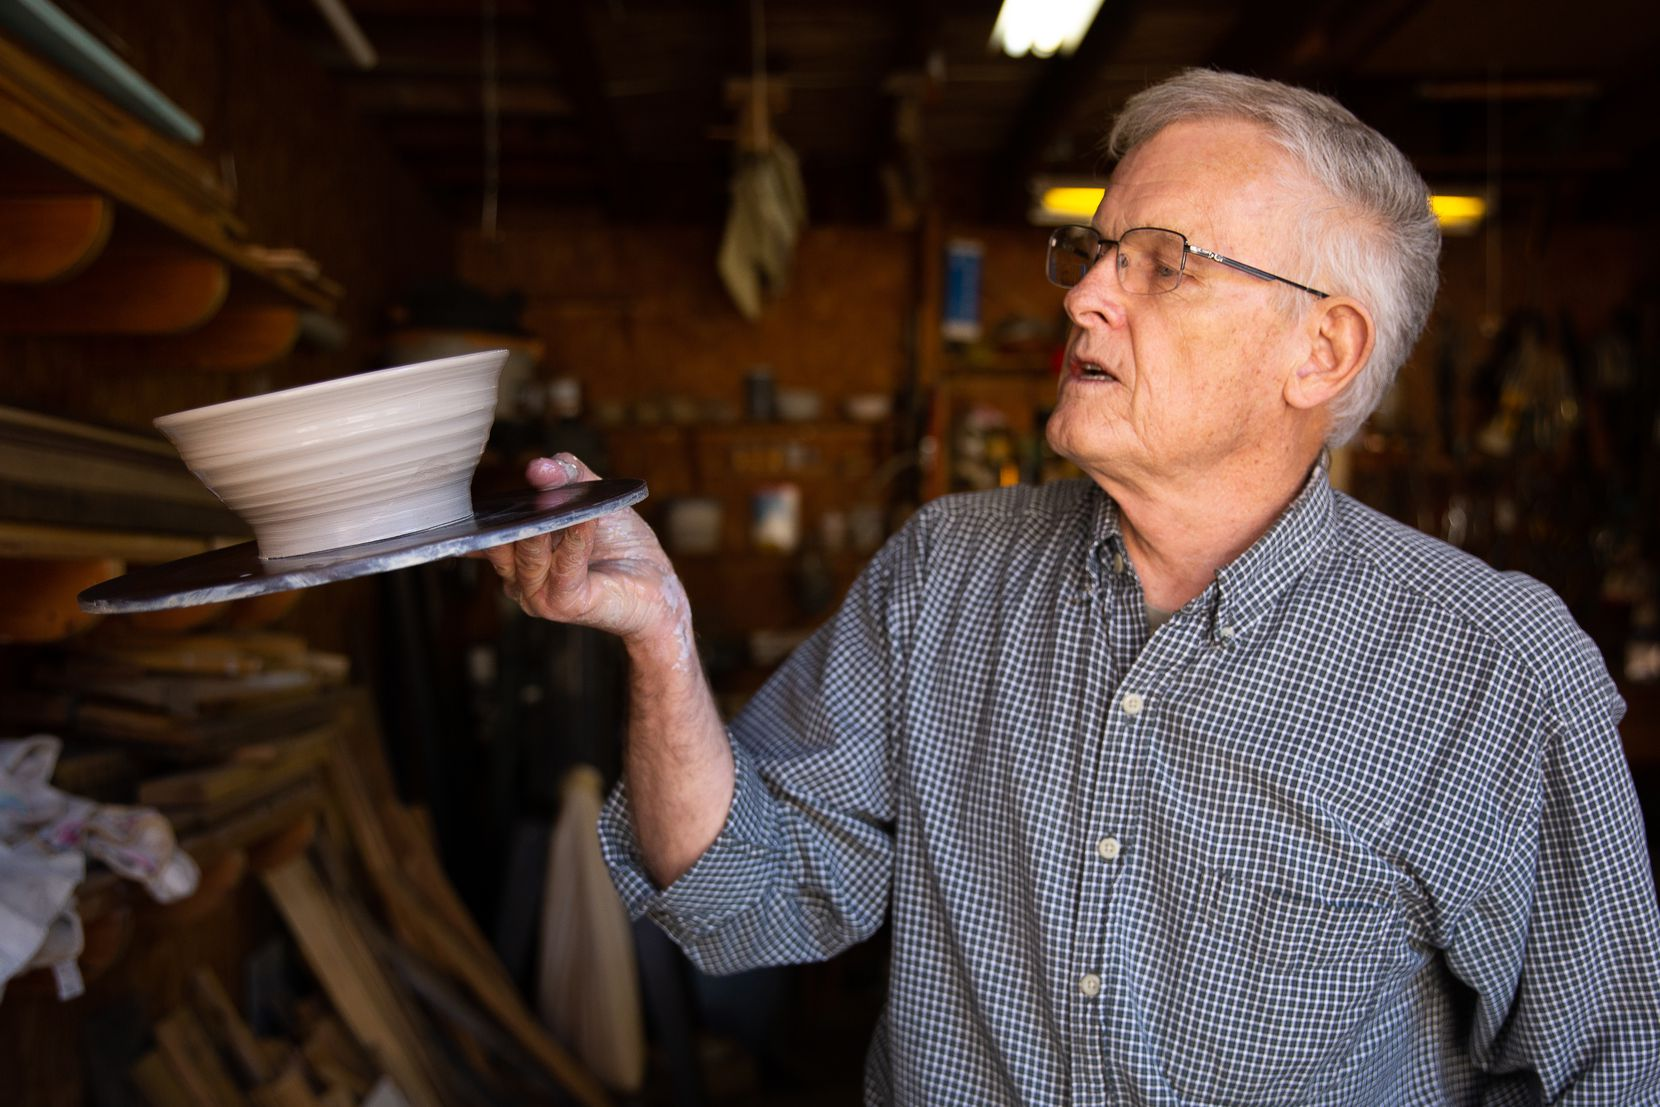 Bill Reed examines a bowl after shaping it in his garage workshop.